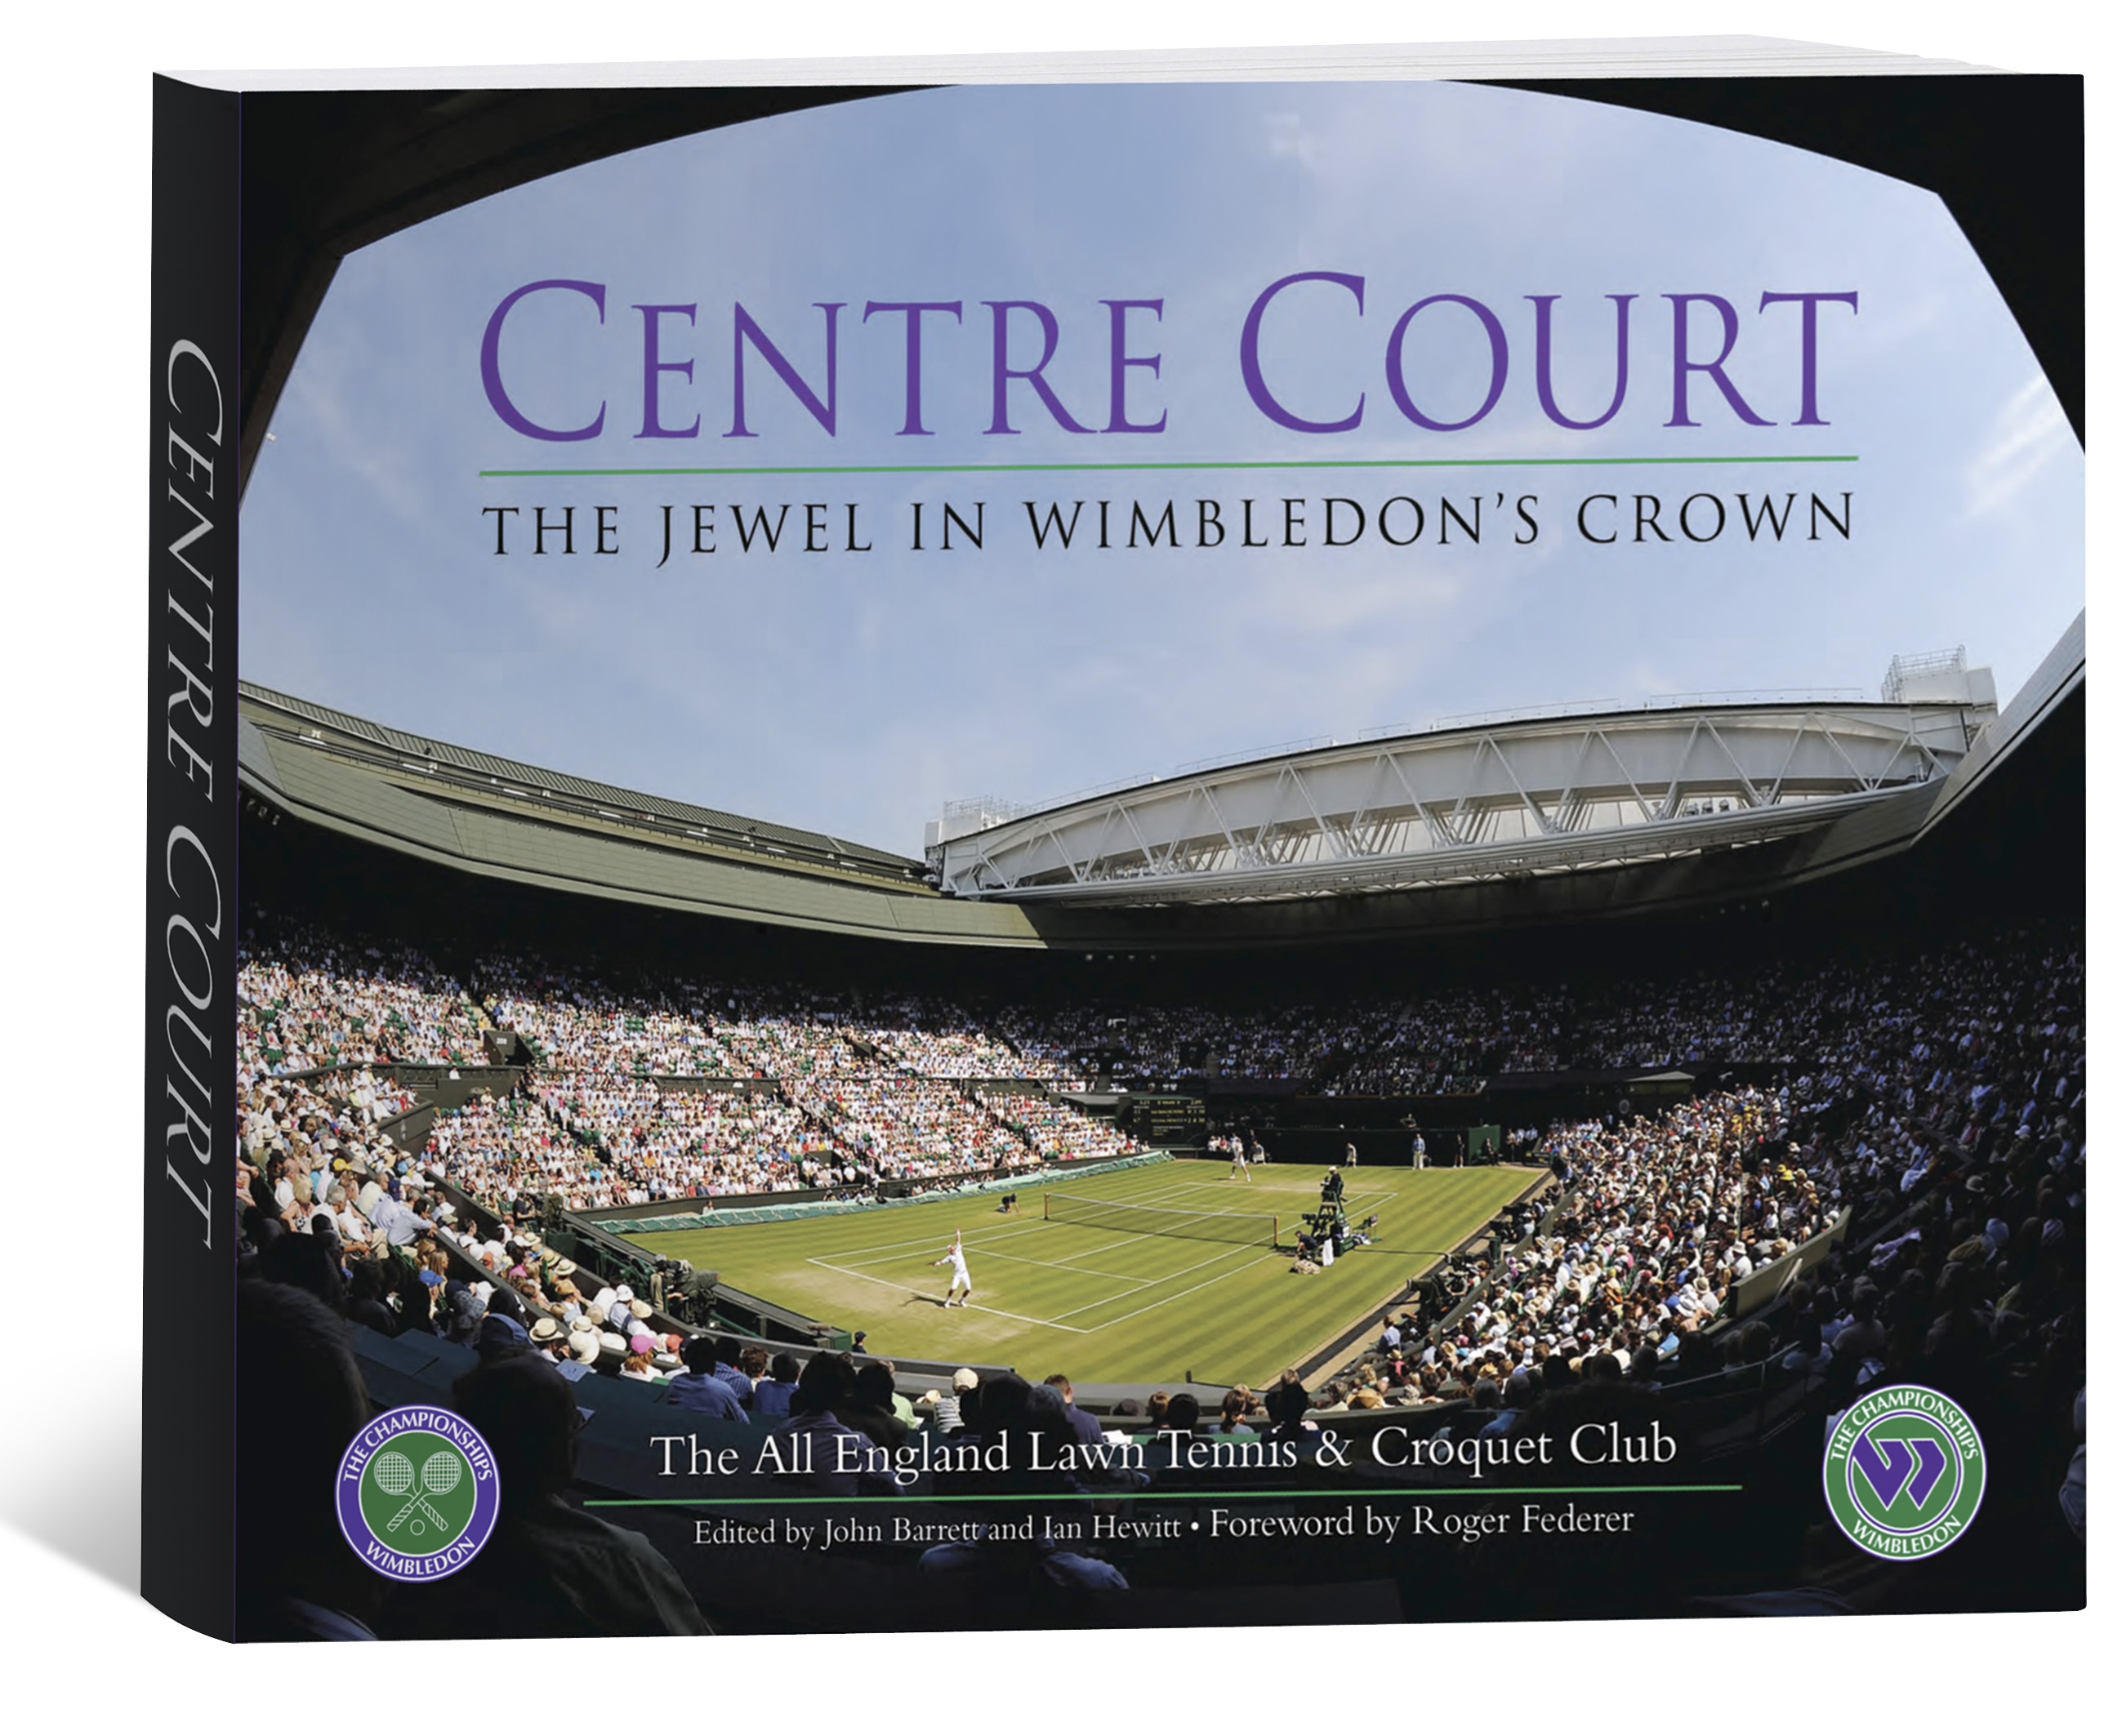 Centre Court The Jewel in Wimbledons Crown Book 2nd Edition